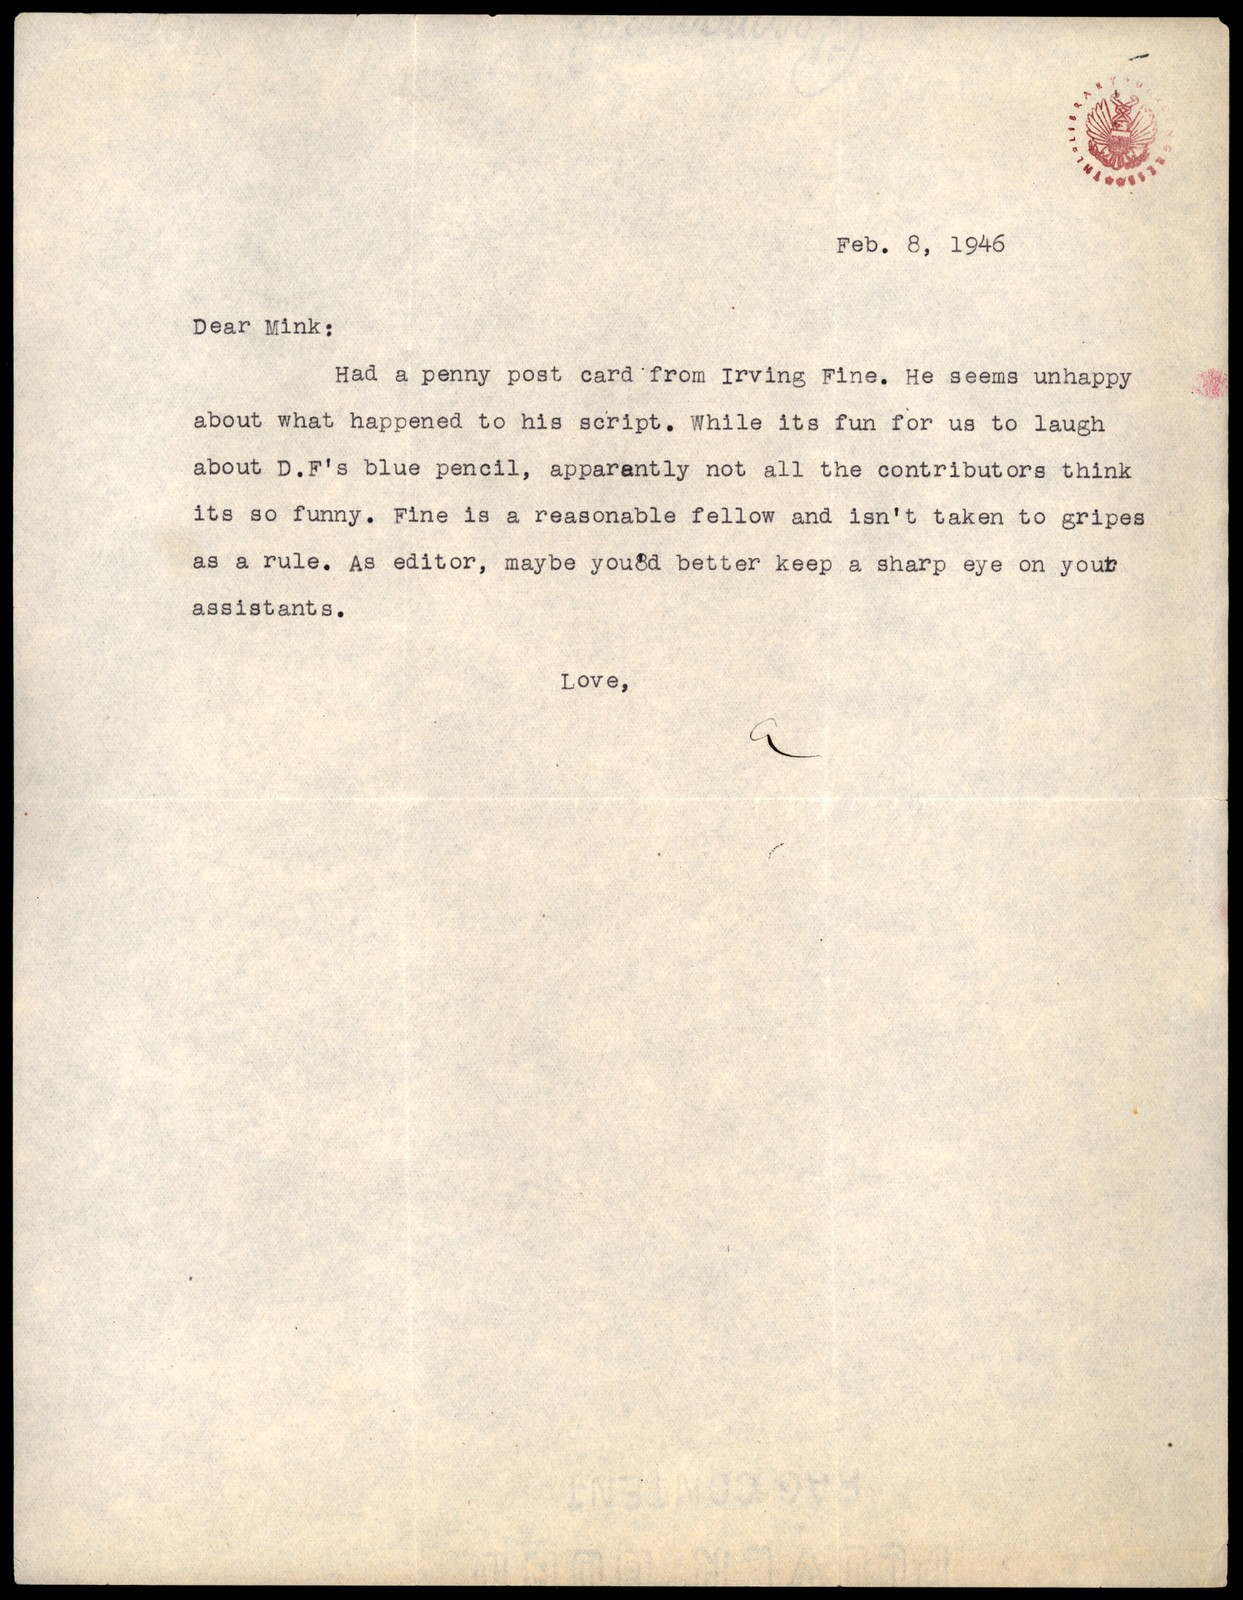 Letter from Aaron Copland to Minna Lederman, February 8, 1946.